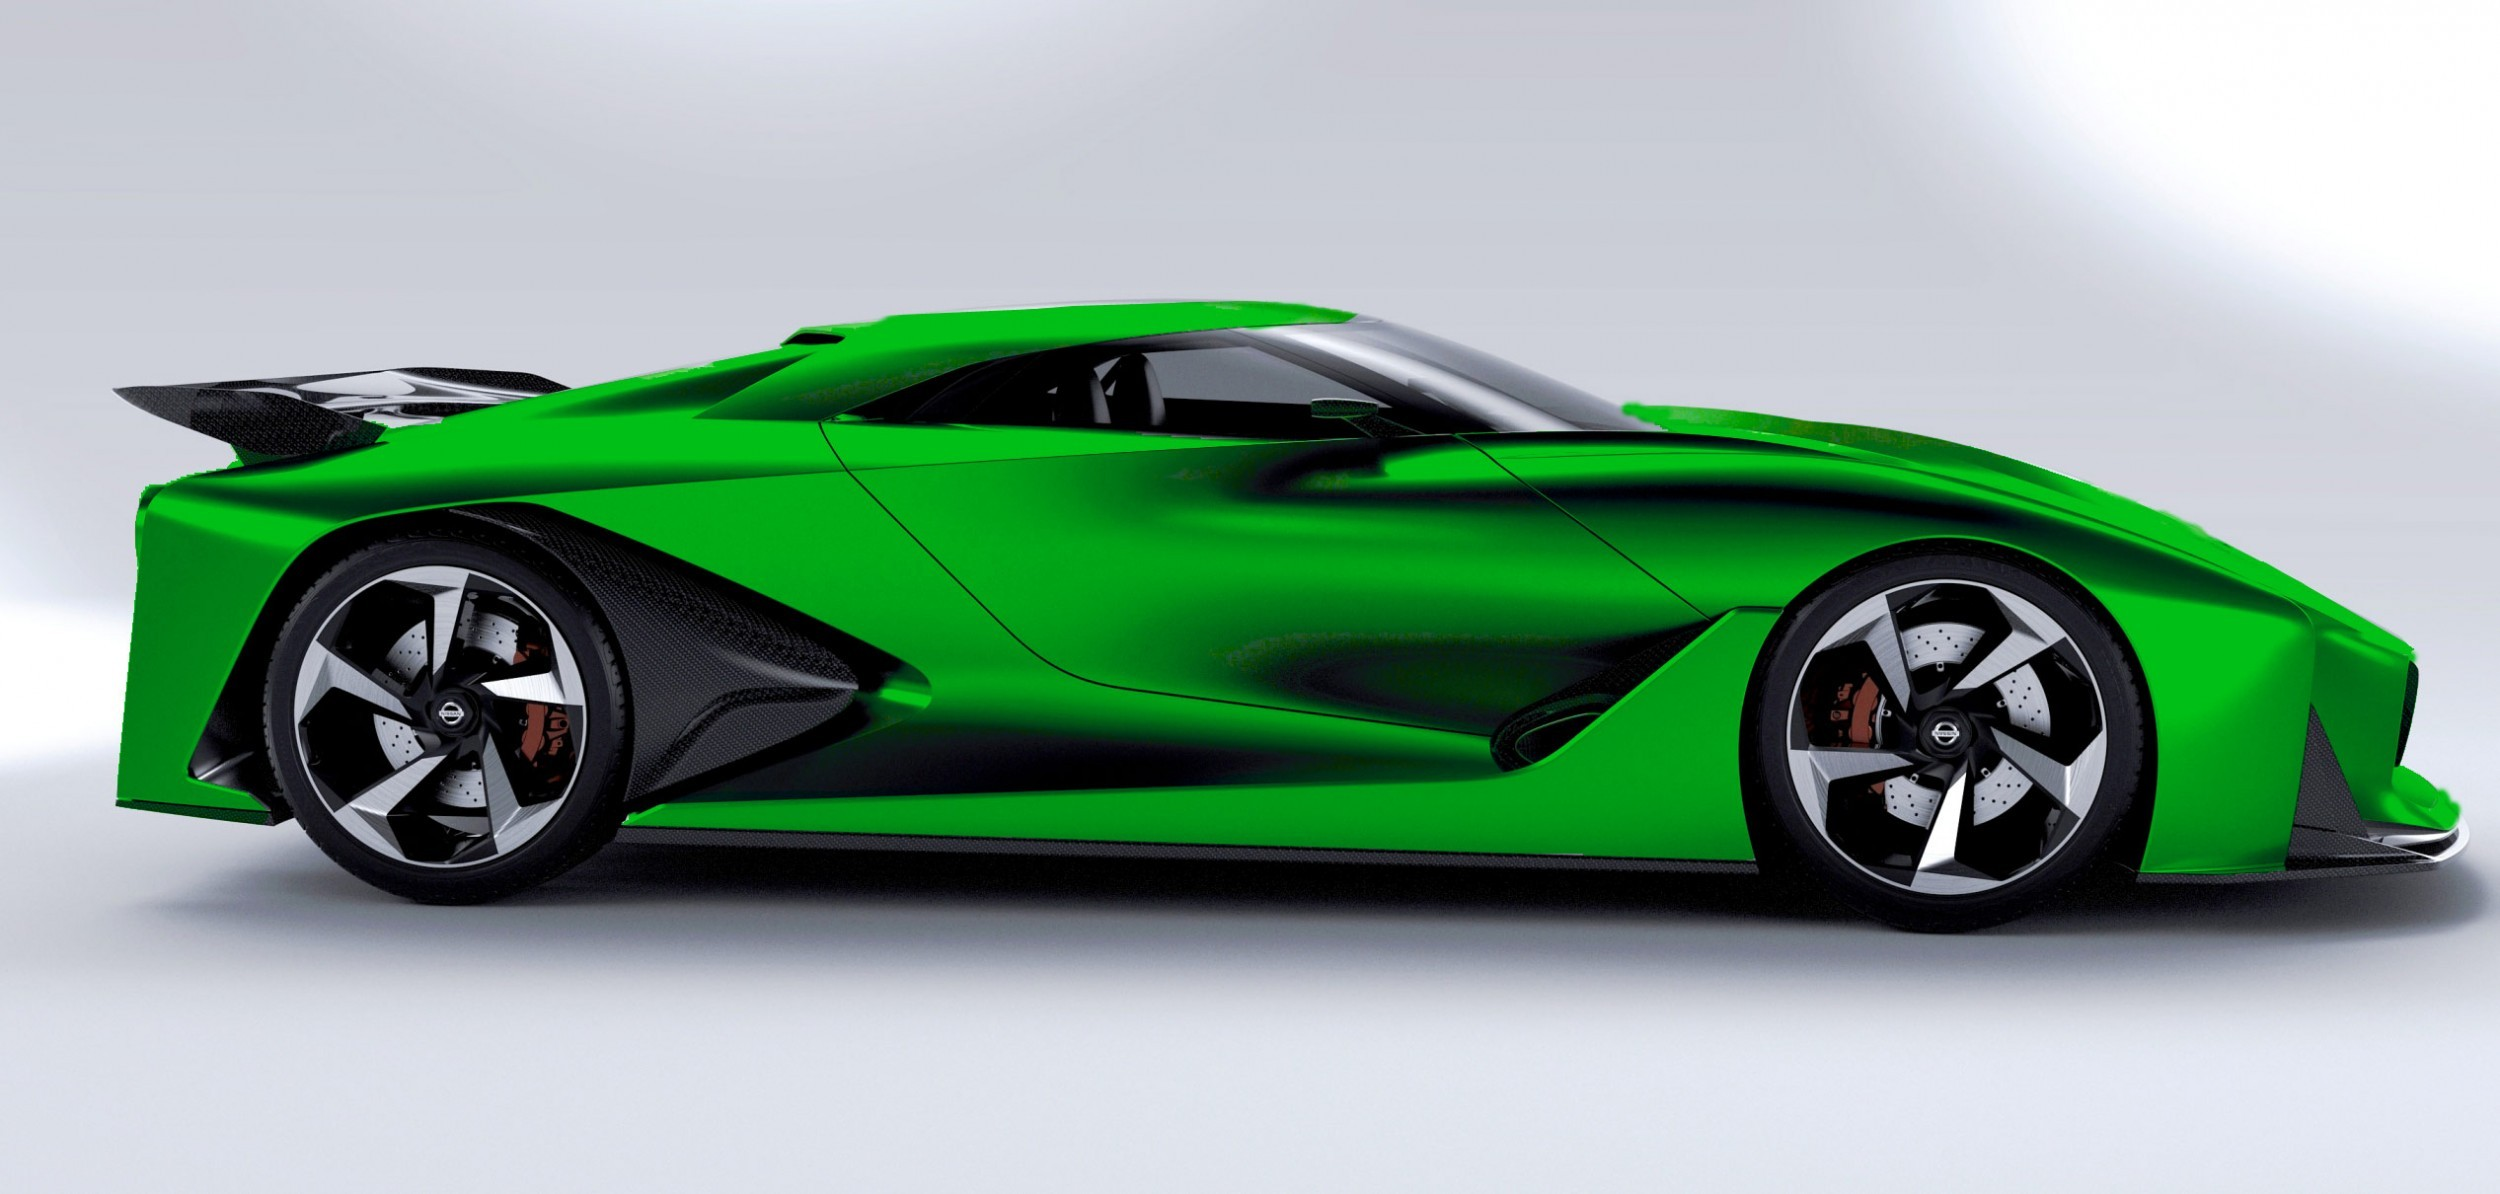 Green/Green/Green 2014 McLaren P1 Proves The Golden Rule at Pebble BeachGreen 2014 McLaren P1Previous:New header graphic for the site today!It is pretty silly… but makes a fun statement, right?Here are the base images, in case you are loving this green supercar trend as much as I am!They are not as good up close… but who is, right?